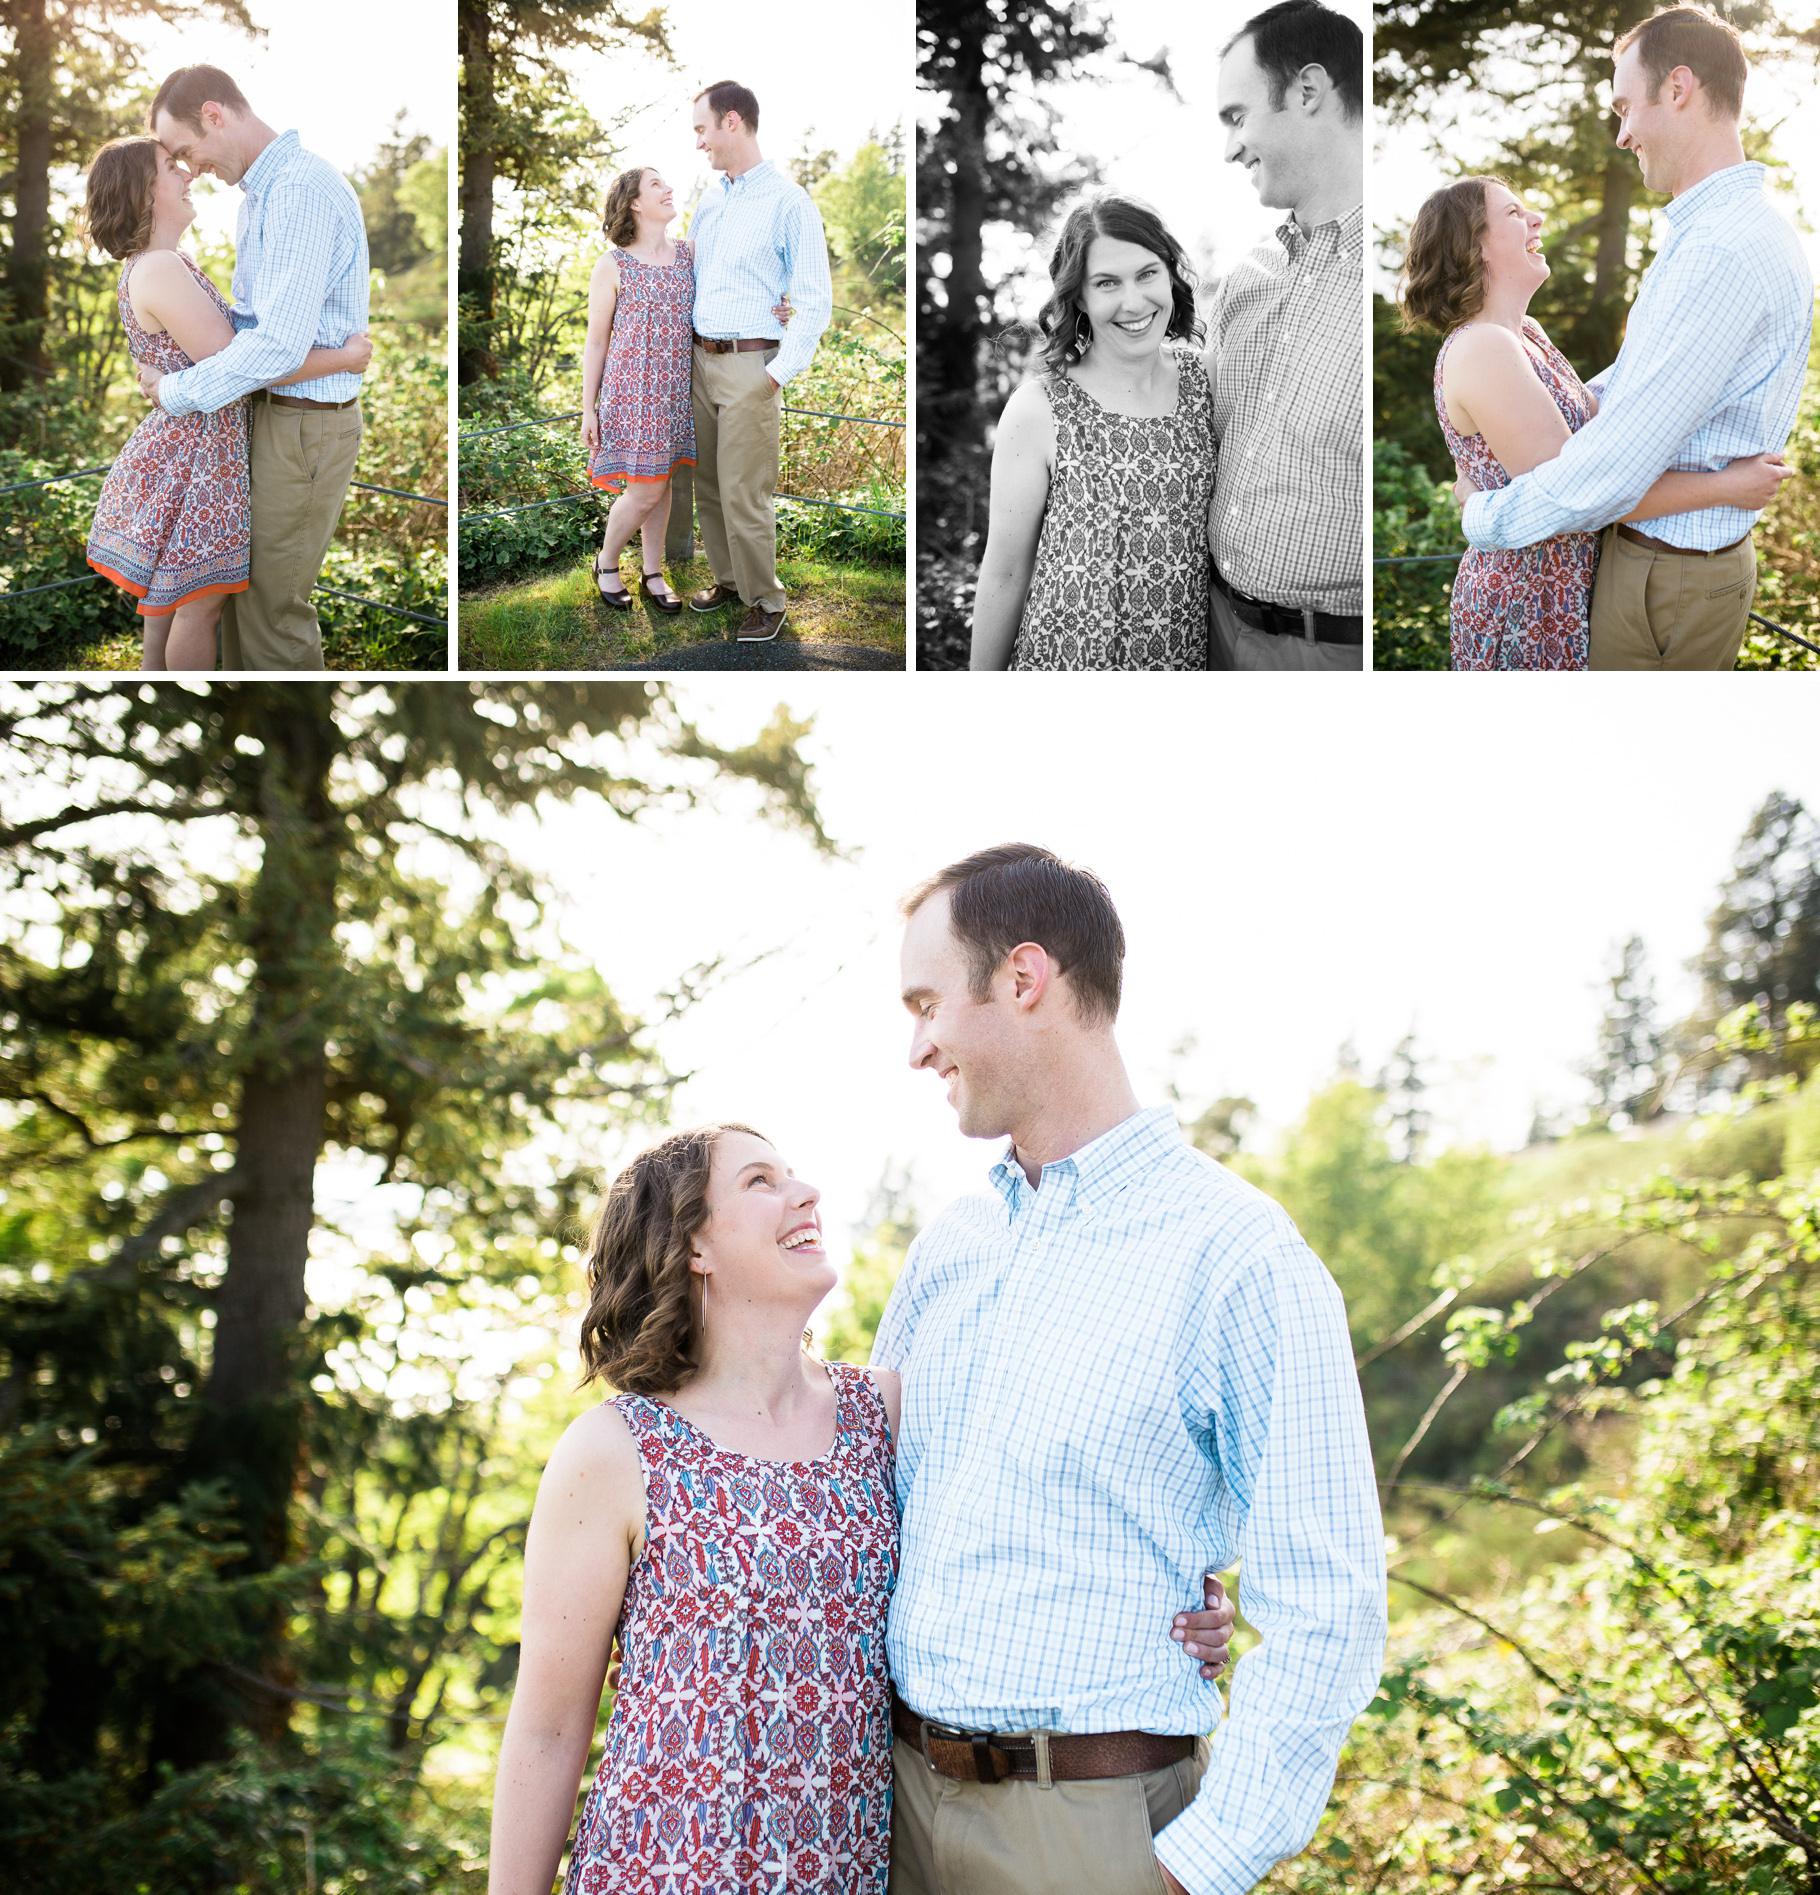 Richmond-Beach-Saltwater-Park-Engagement-Session-Engaged-Wedding-Photographer_0003